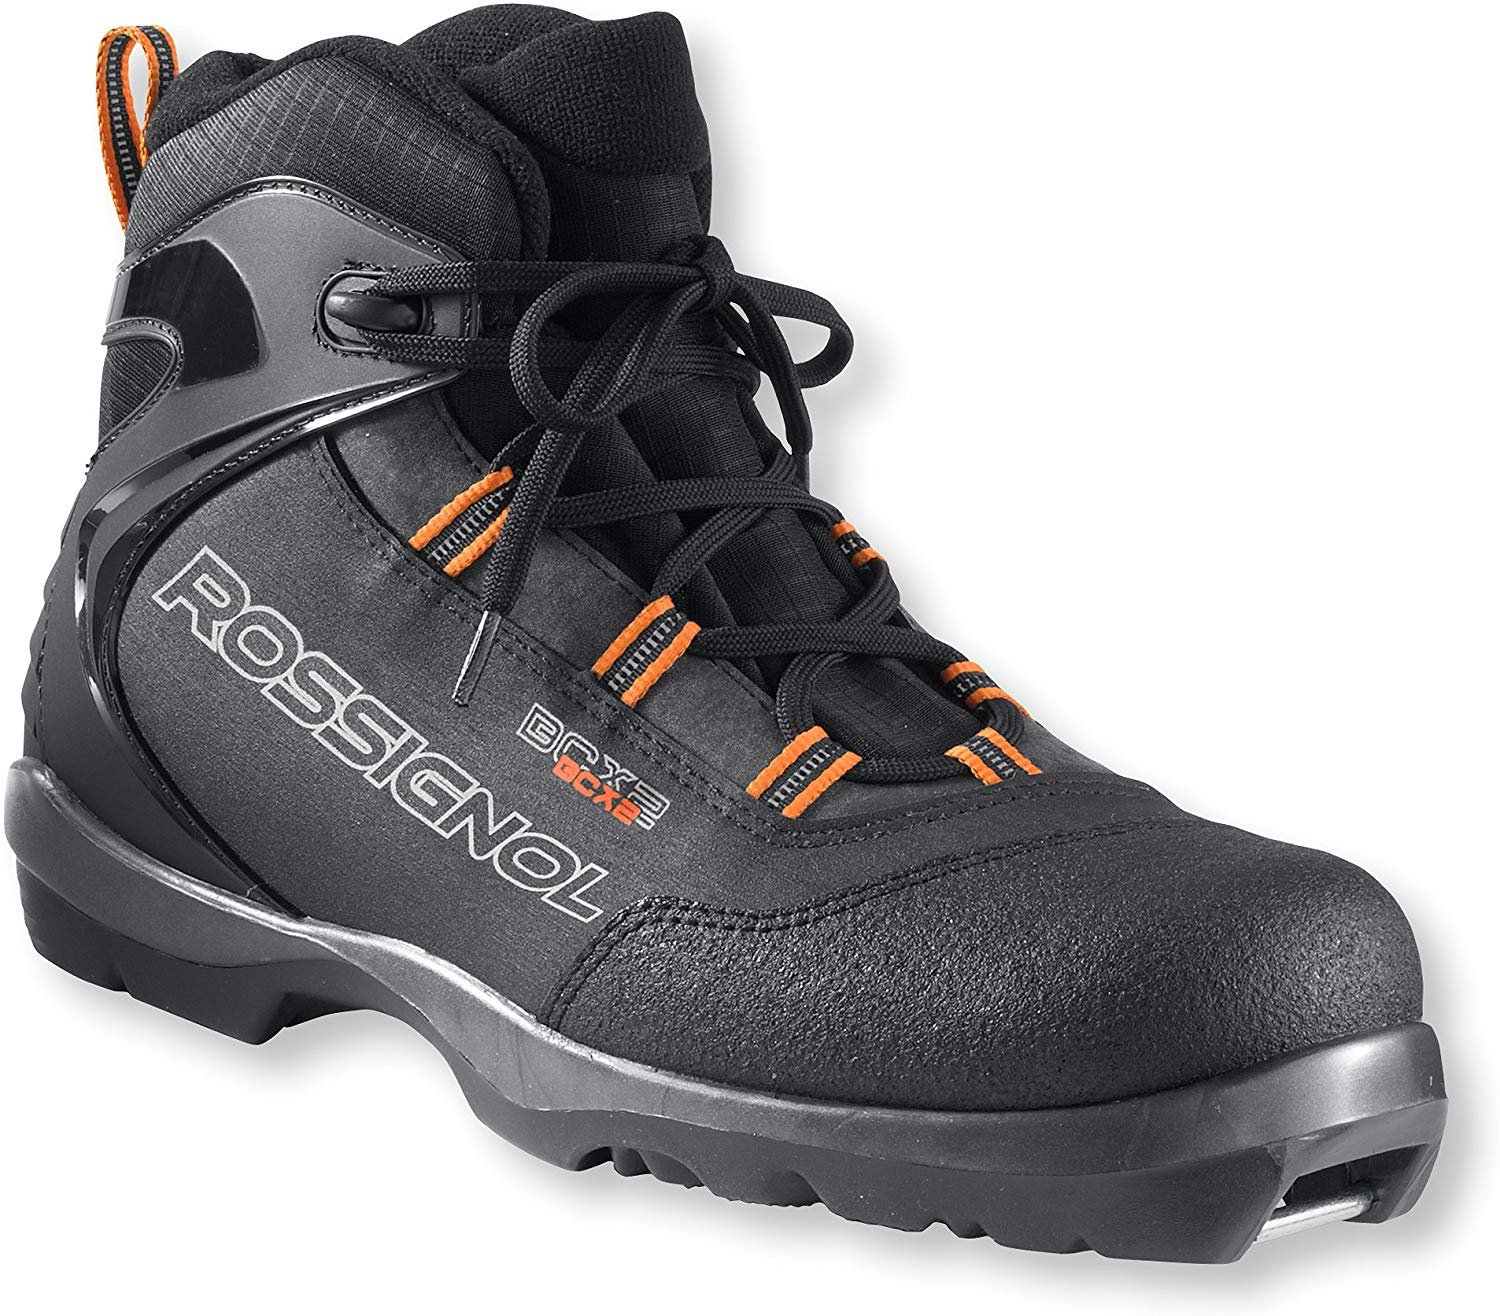 Rossignol BC X2 Boots 2013